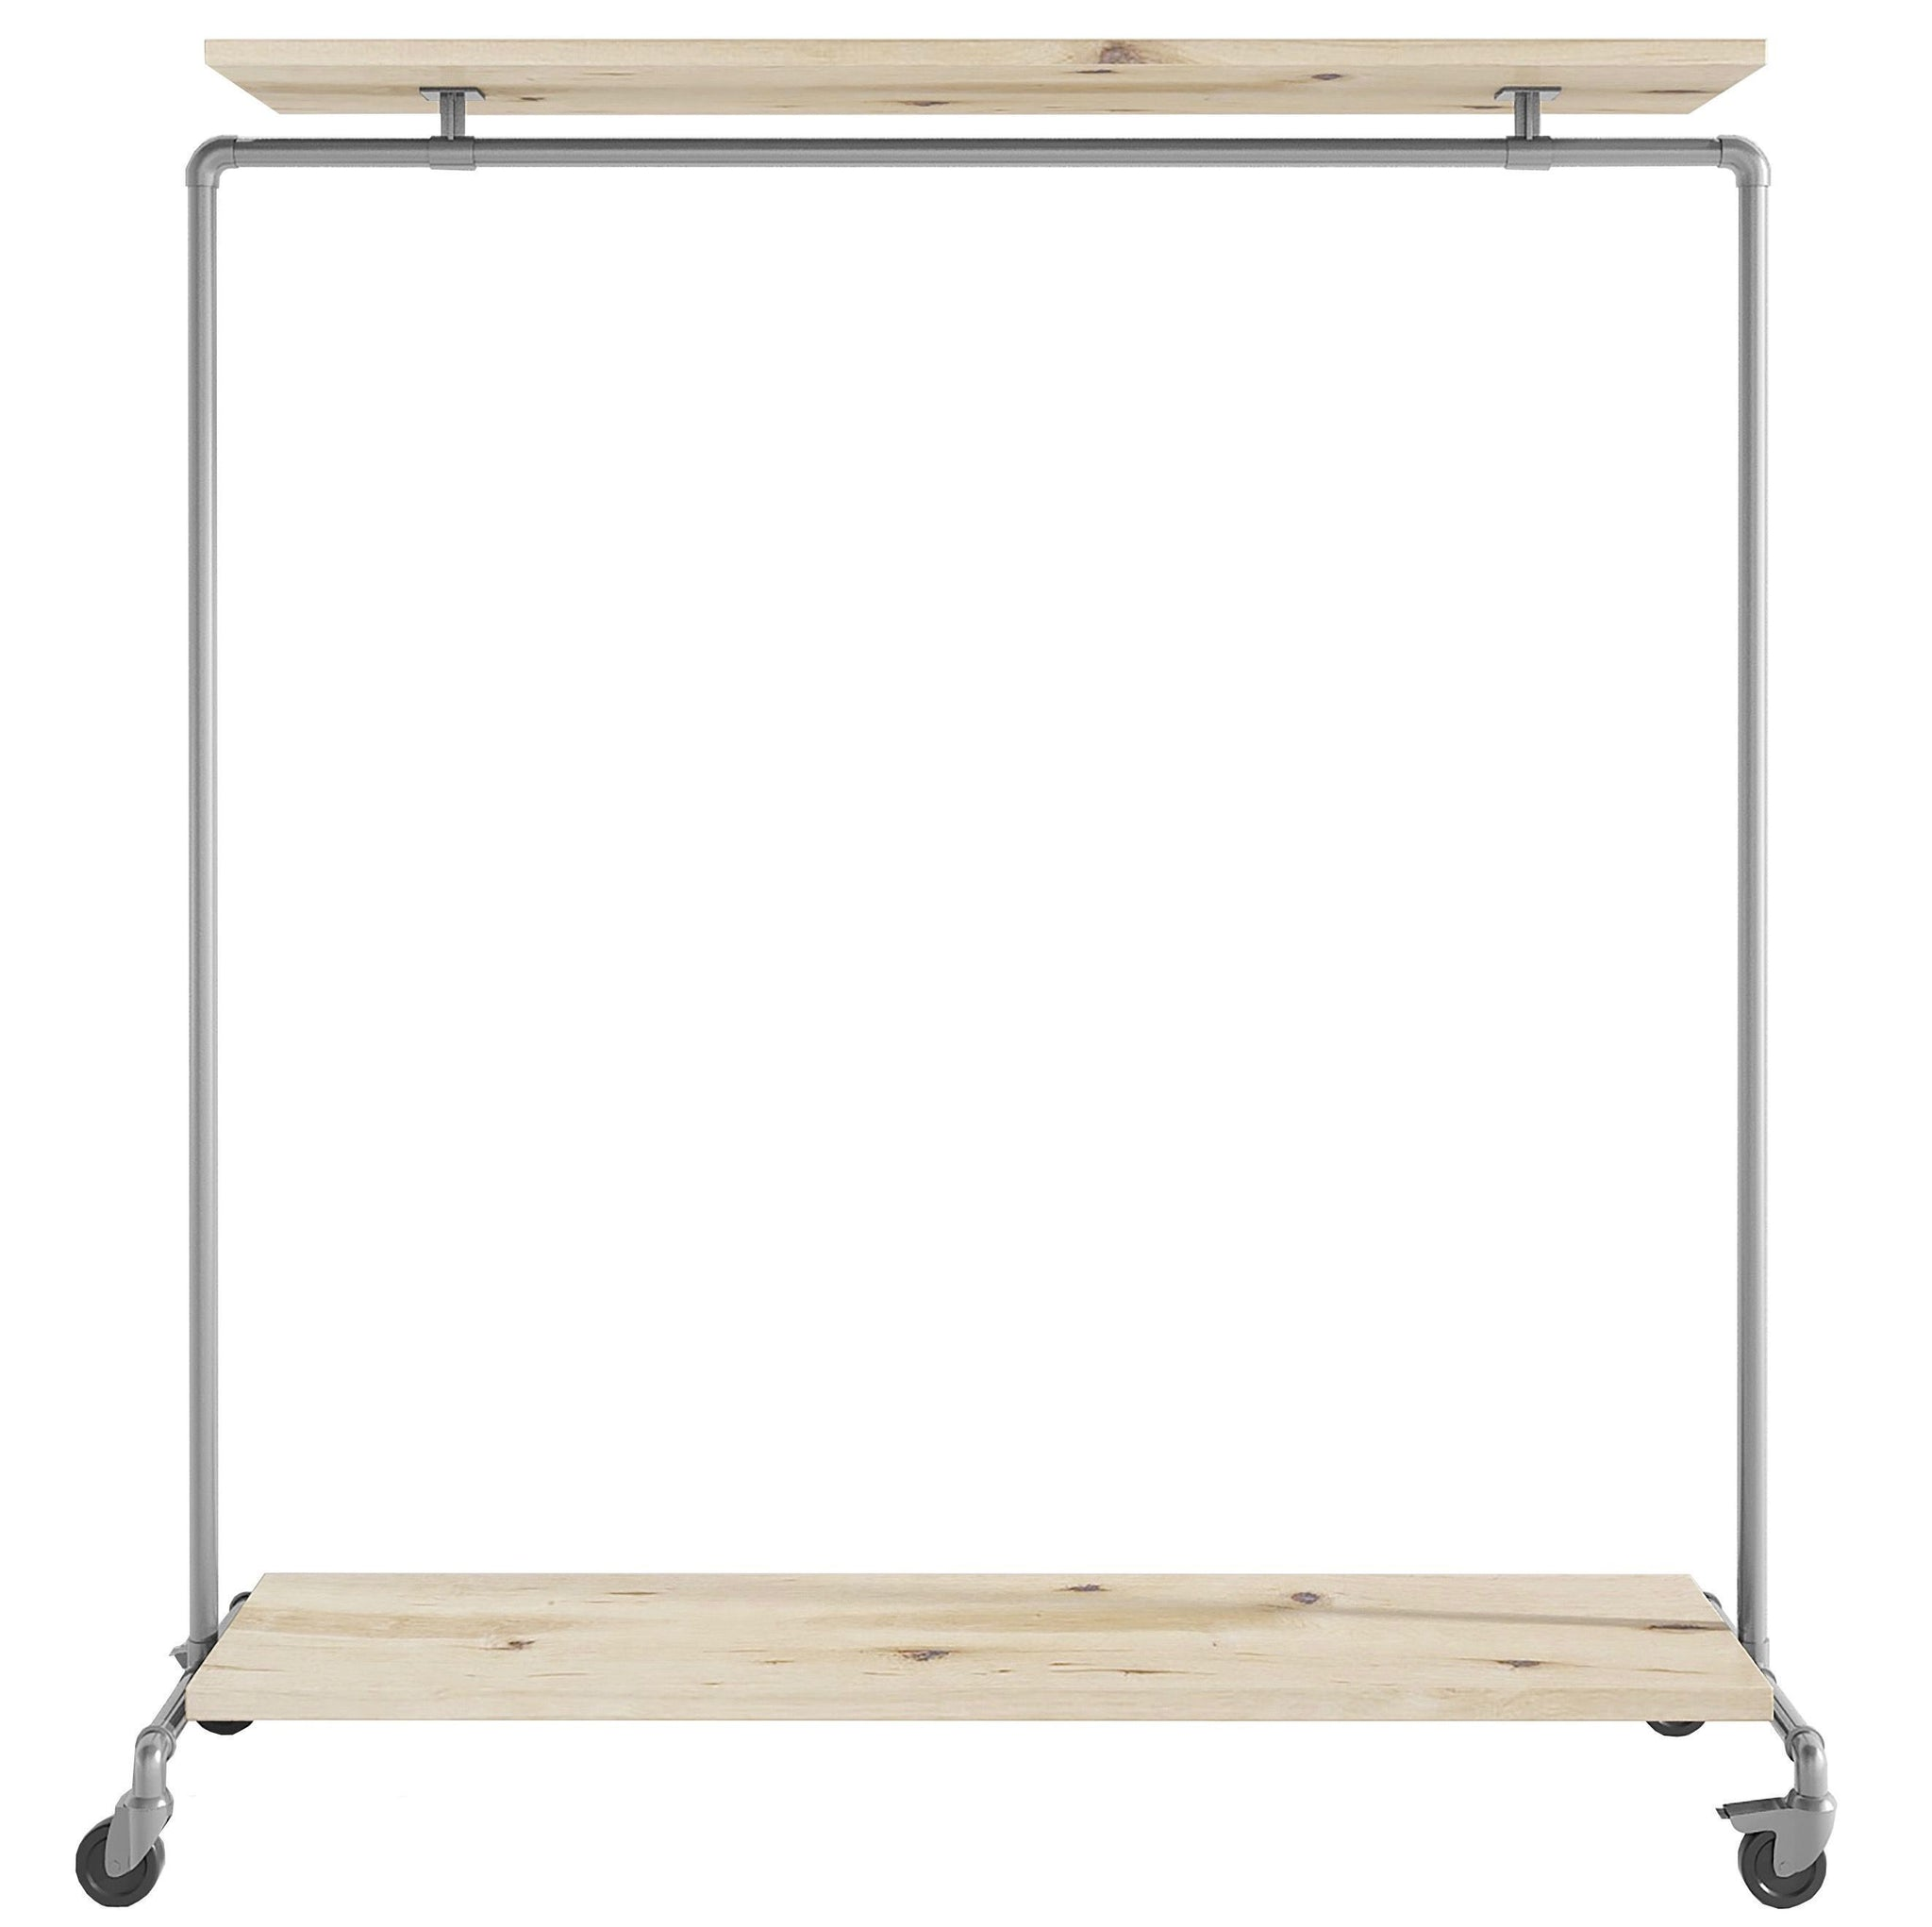 Ziito Clothes Rail C1 / 150 cm / Med Wood Double Shelf Tøjstativ